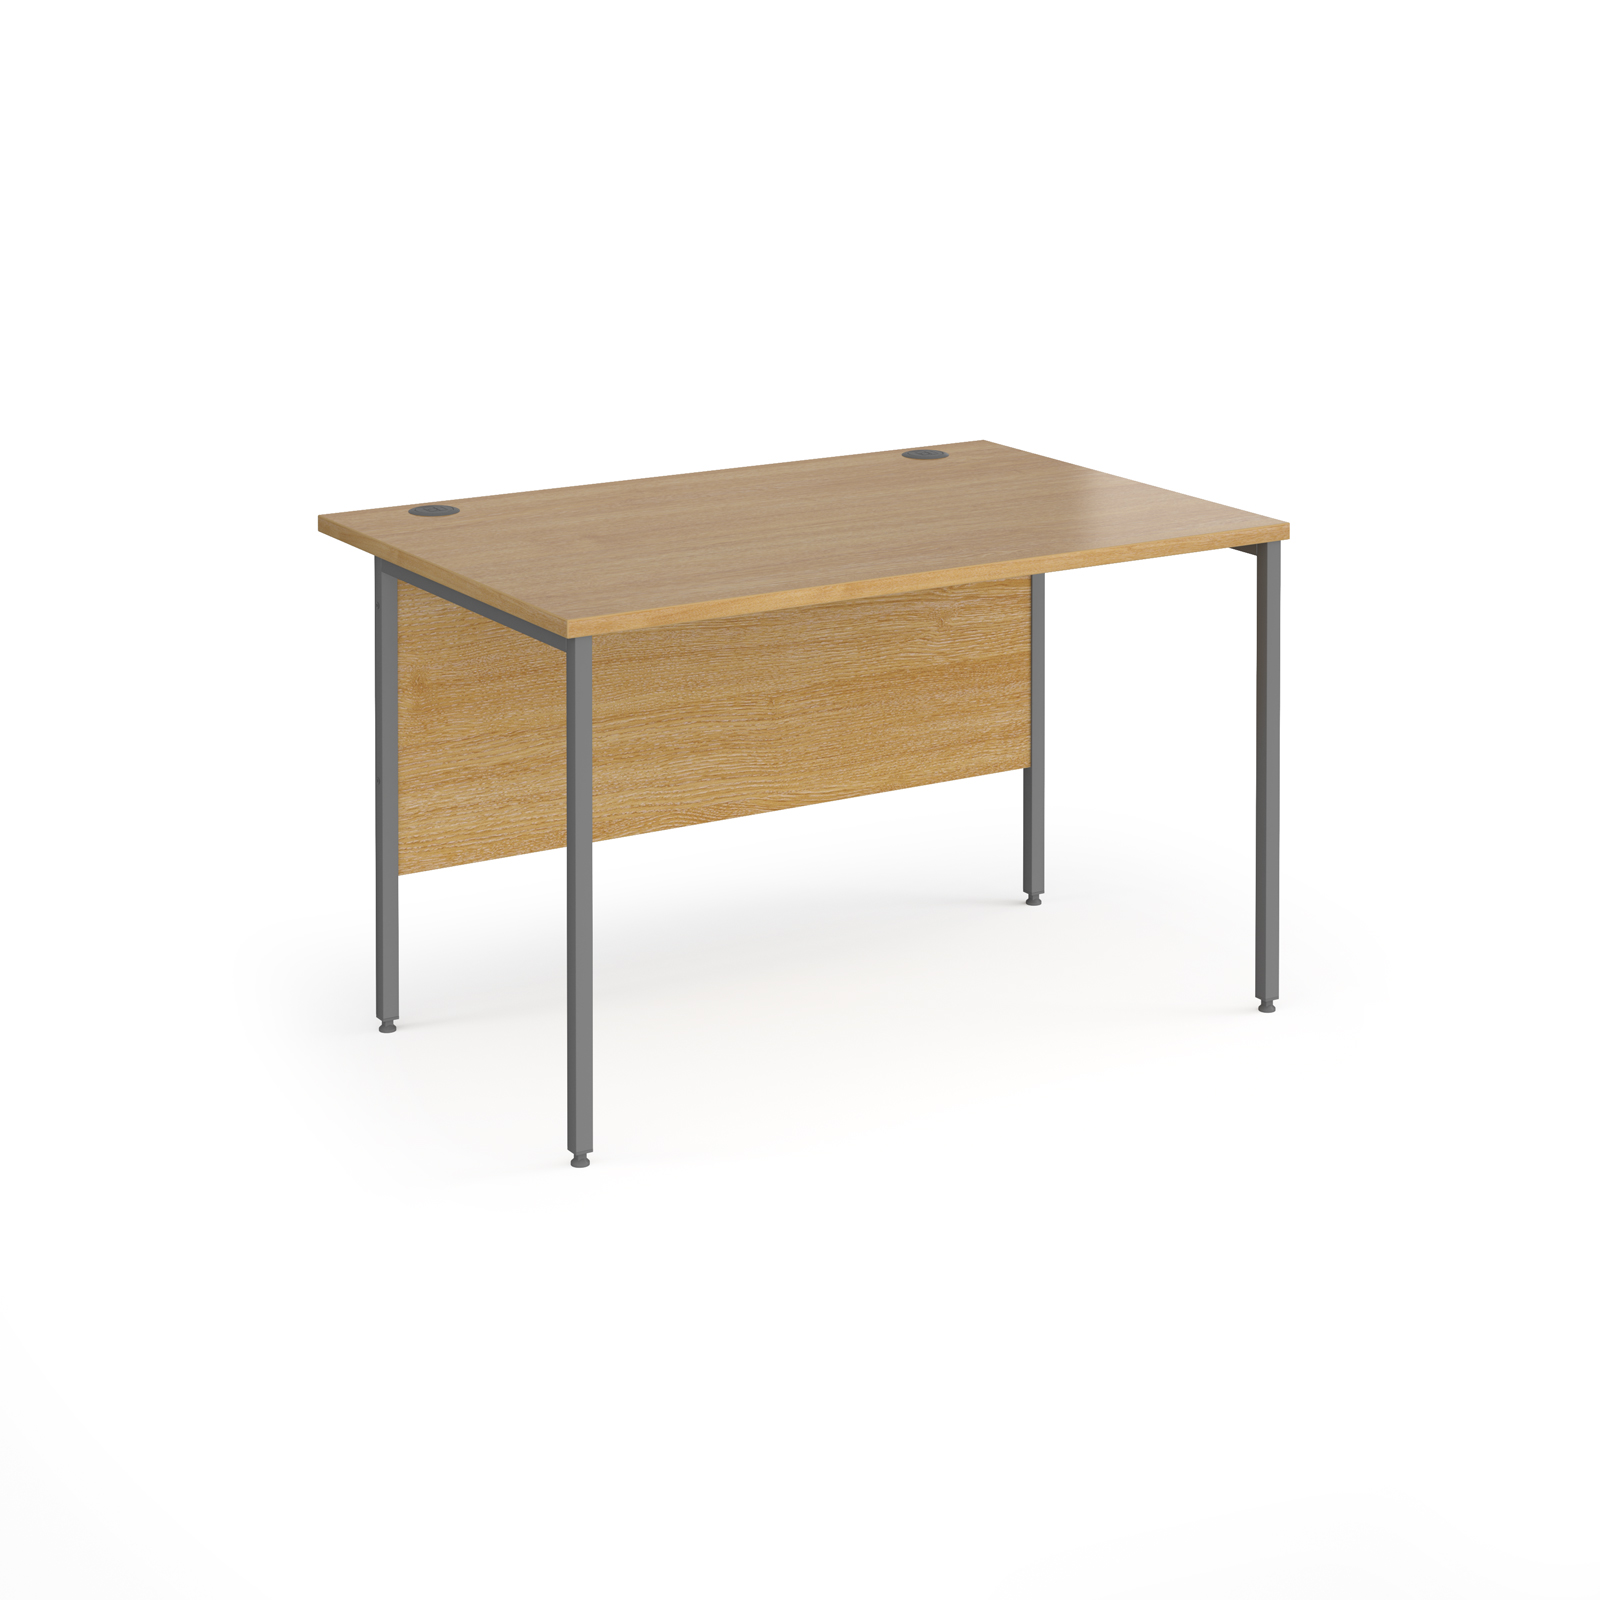 Rectangular Desks Contract 25 straight desk with graphite H-Frame leg 1200mm x 800mm - oak top